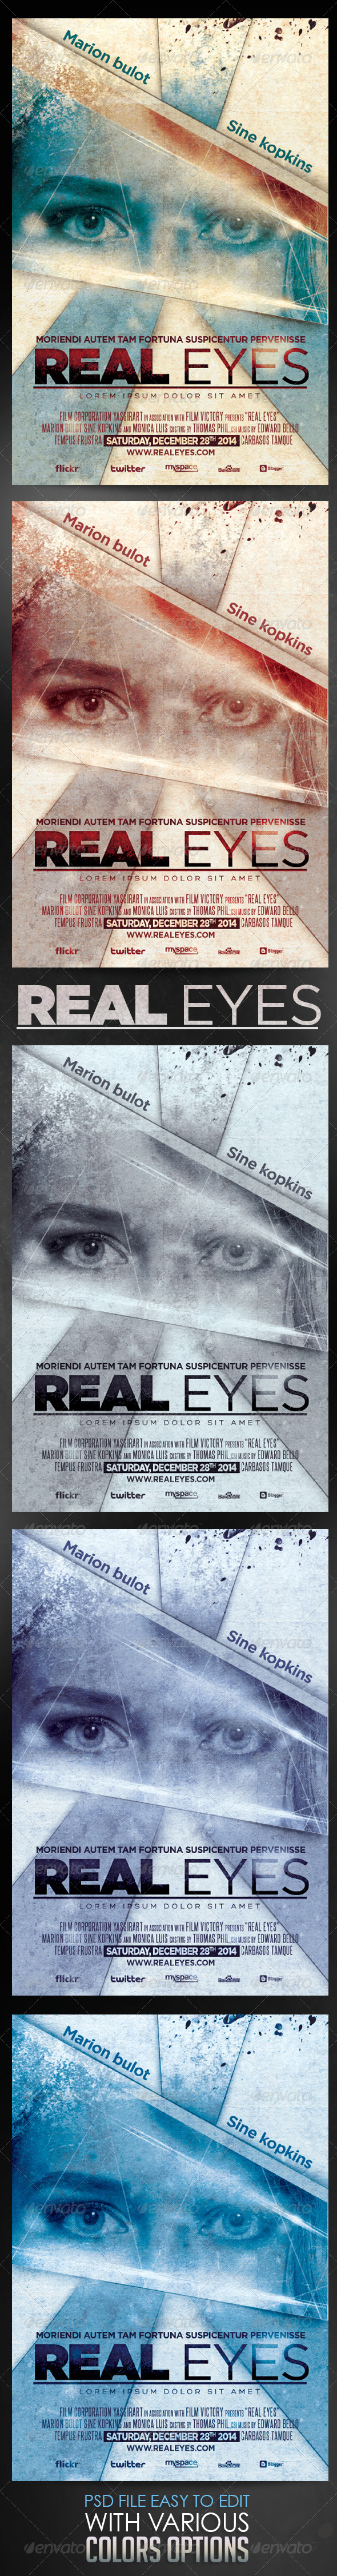 Real Eyes Film Template